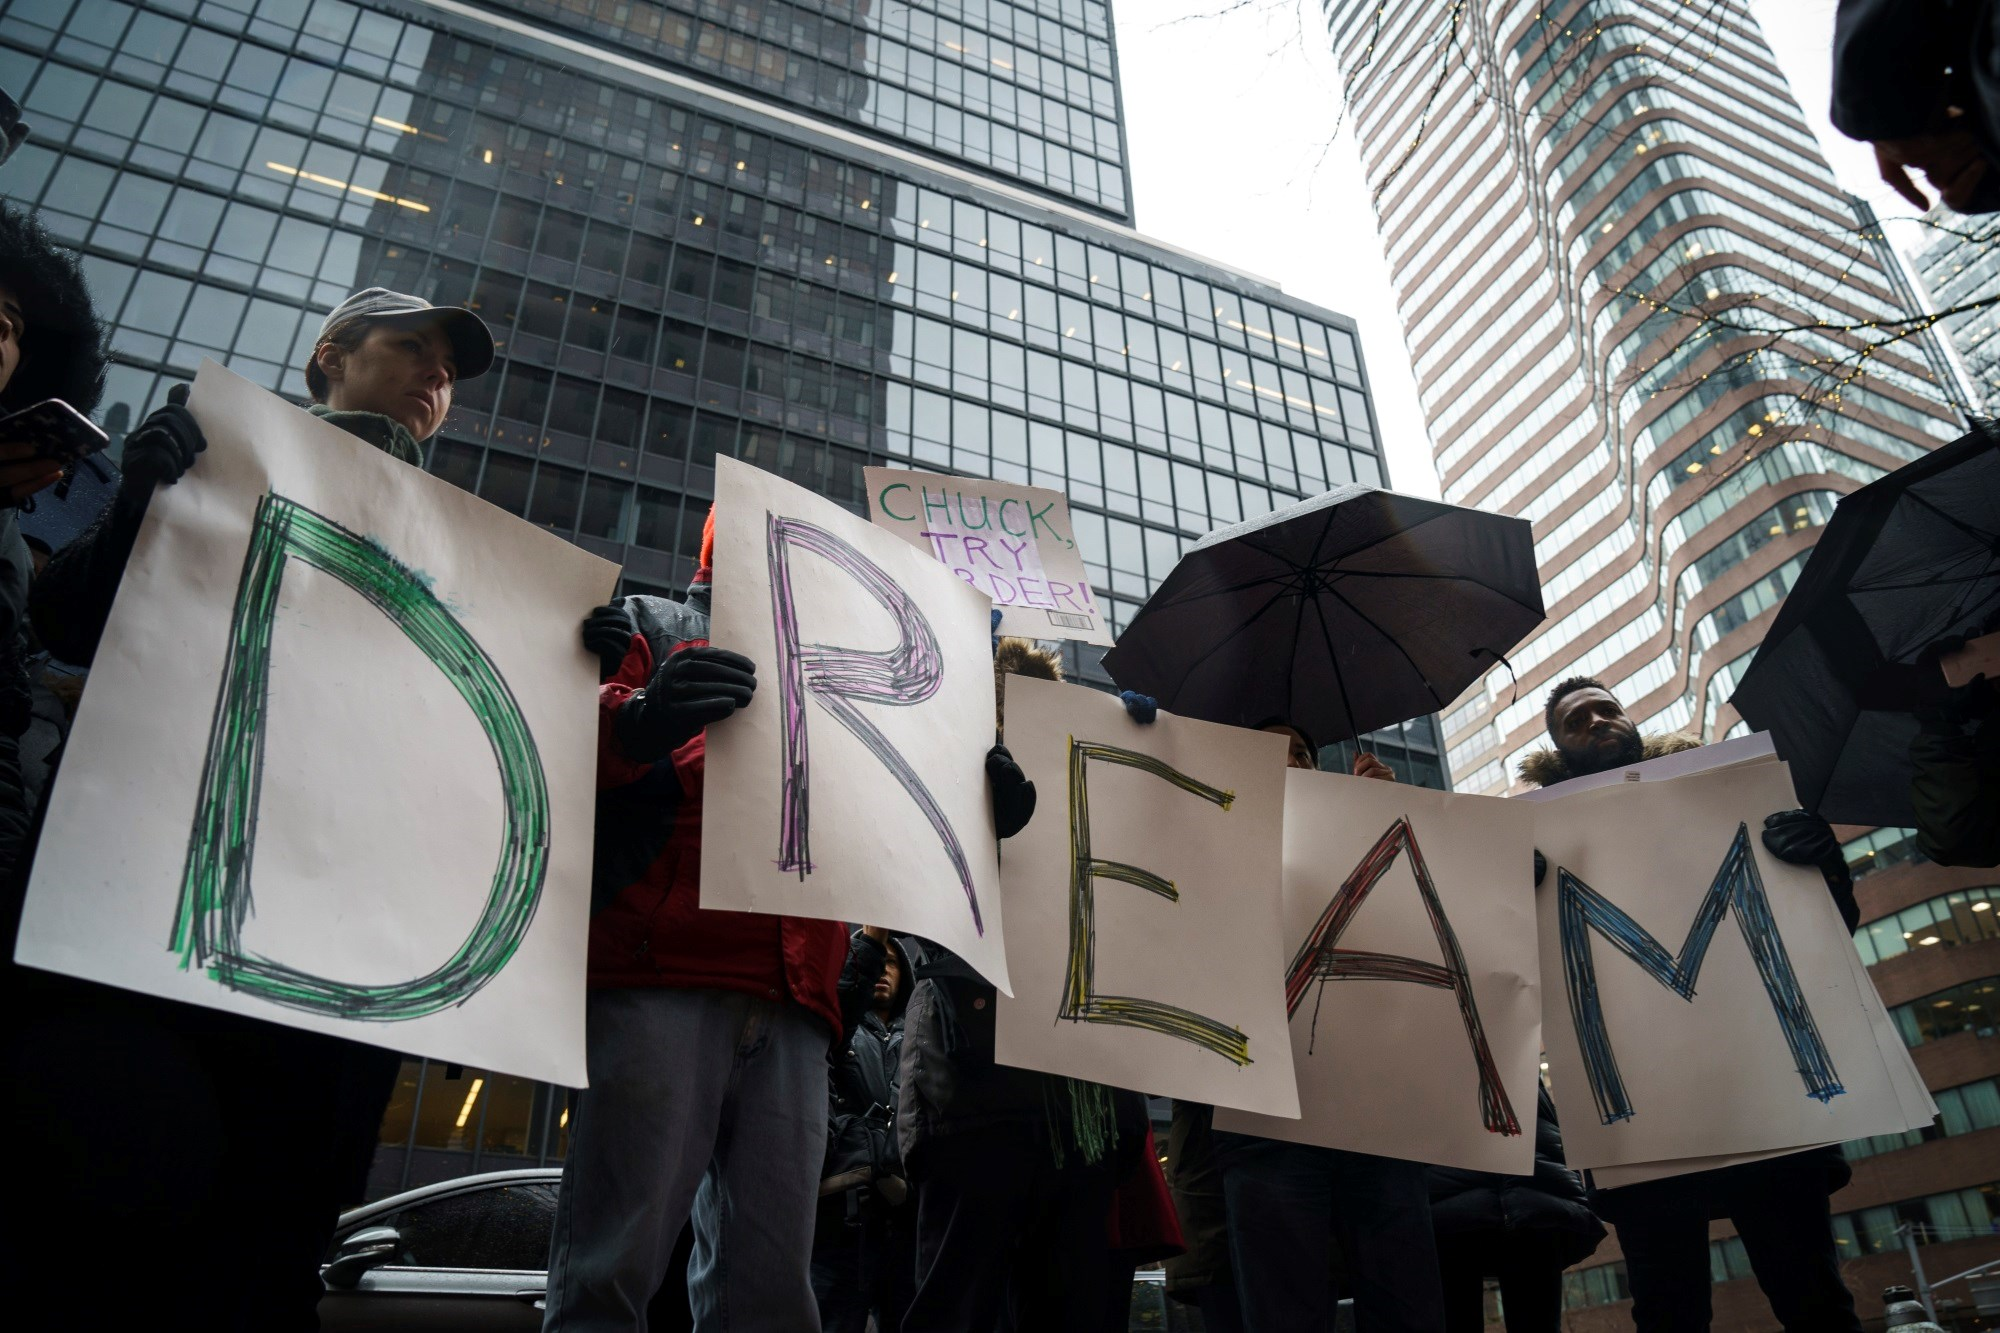 Dreamers have expressed lower self-esteem and higher rates of chronic disease after the repeal of DACA.